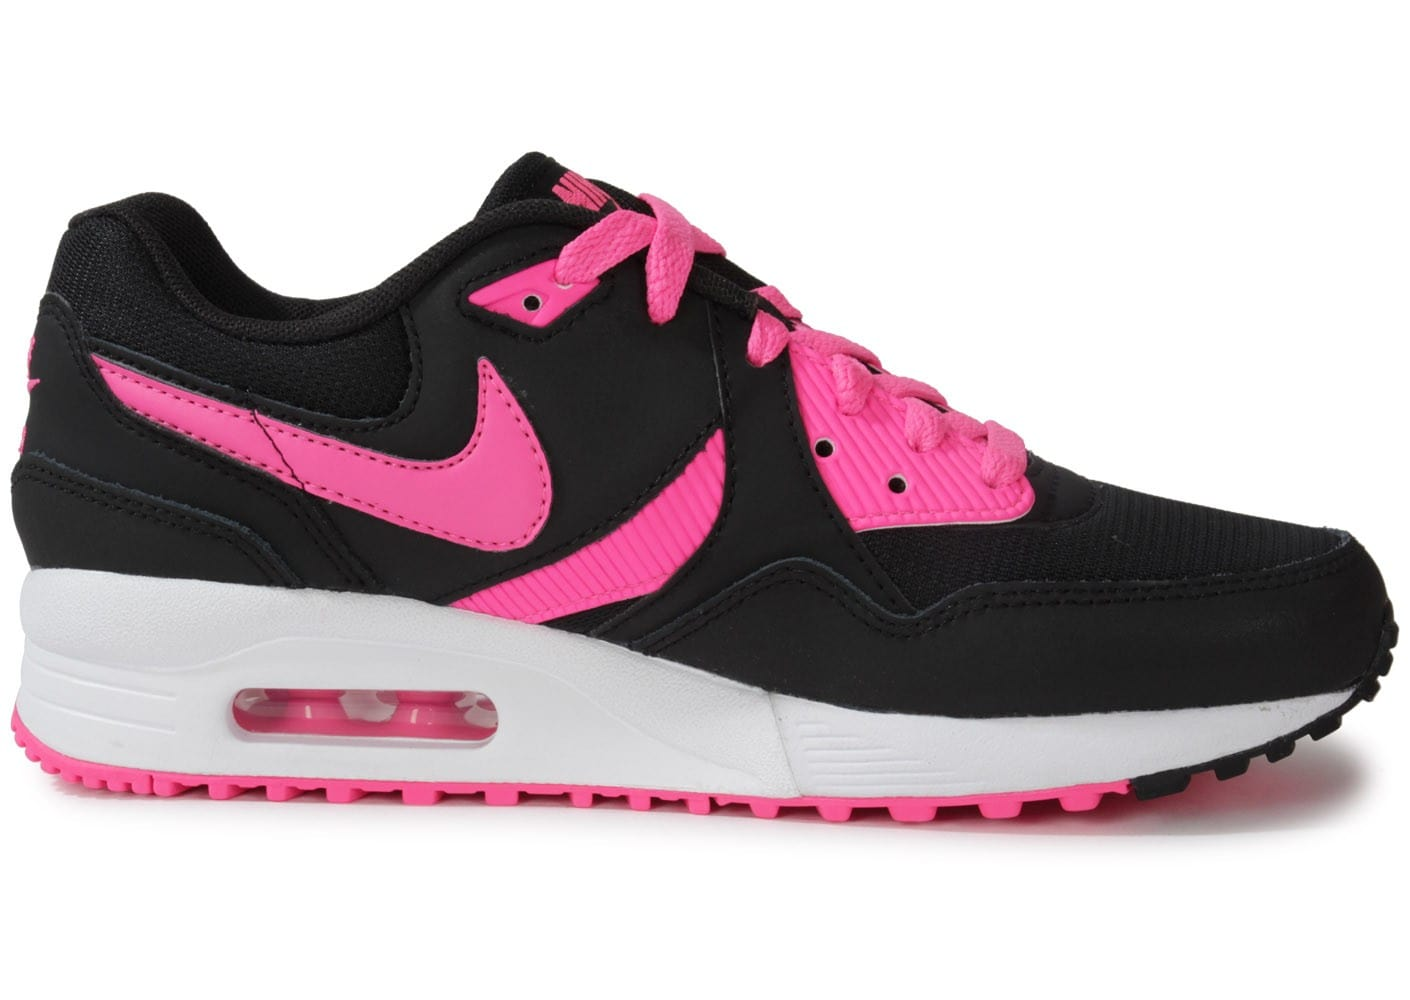 nike air max light junior noire rose chaussures chaussures chausport. Black Bedroom Furniture Sets. Home Design Ideas